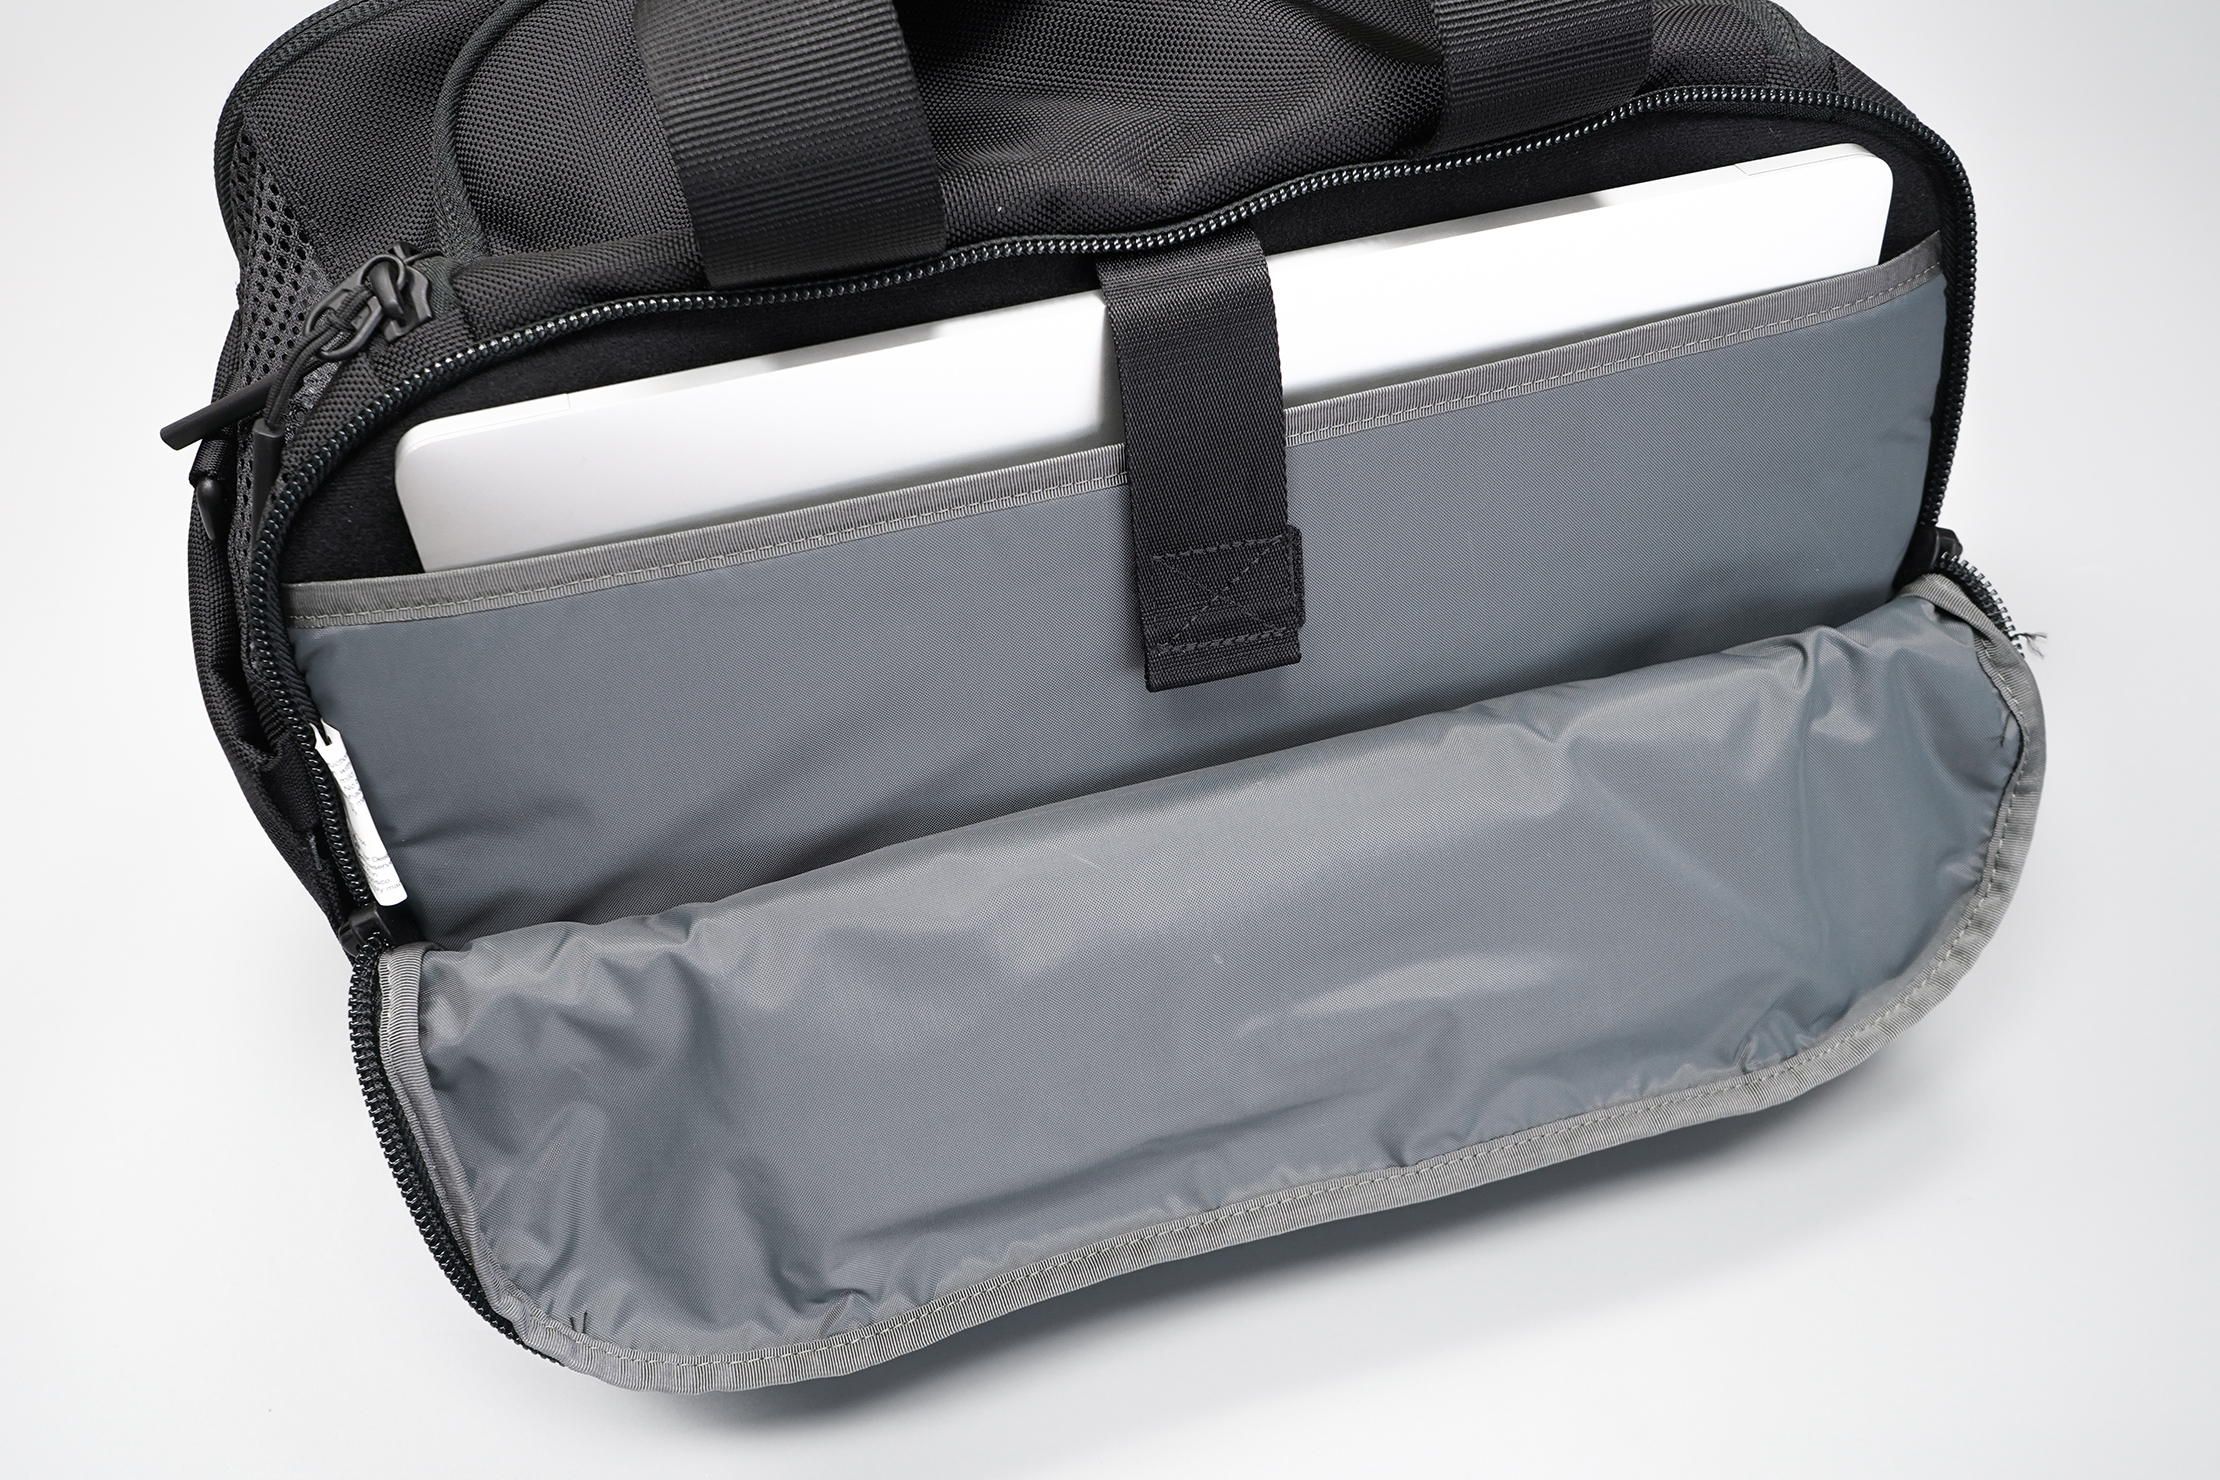 Aer Gym Duffel 3 laptop compartment